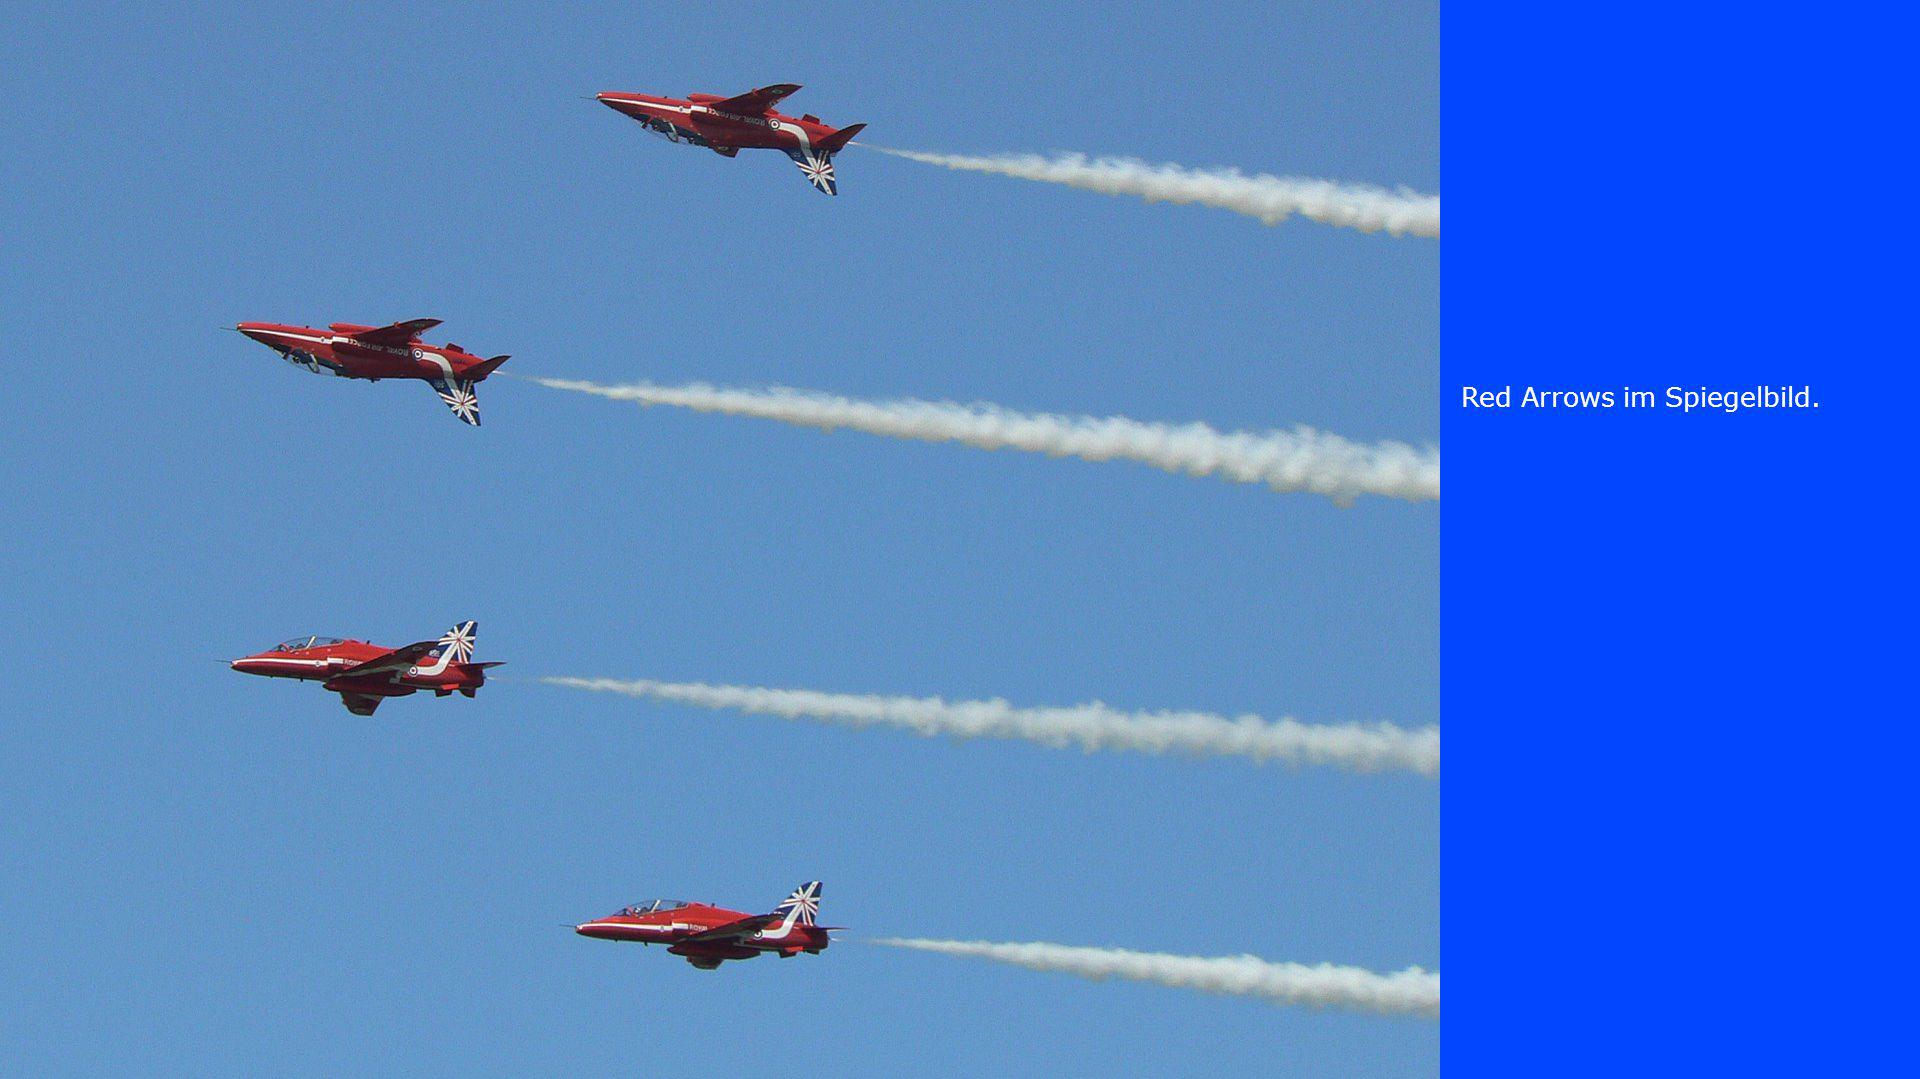 Red Arrows im Spiegelbild.